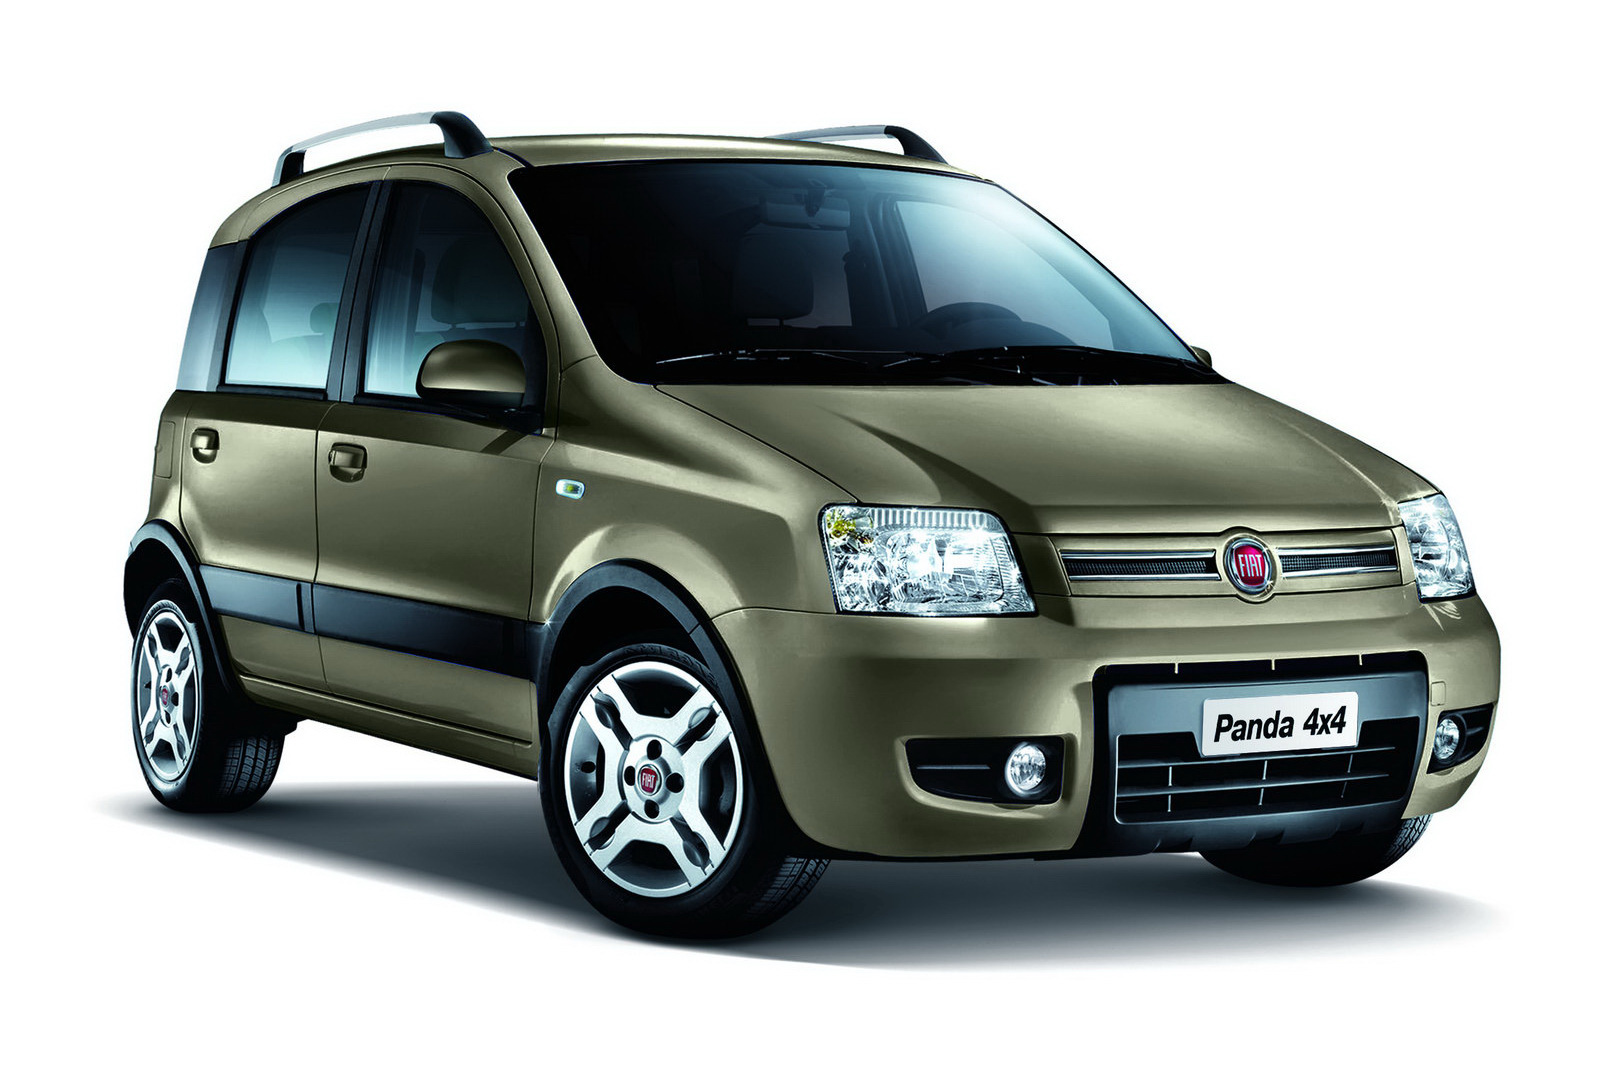 fiat panda 2012 autooonline magazine. Black Bedroom Furniture Sets. Home Design Ideas